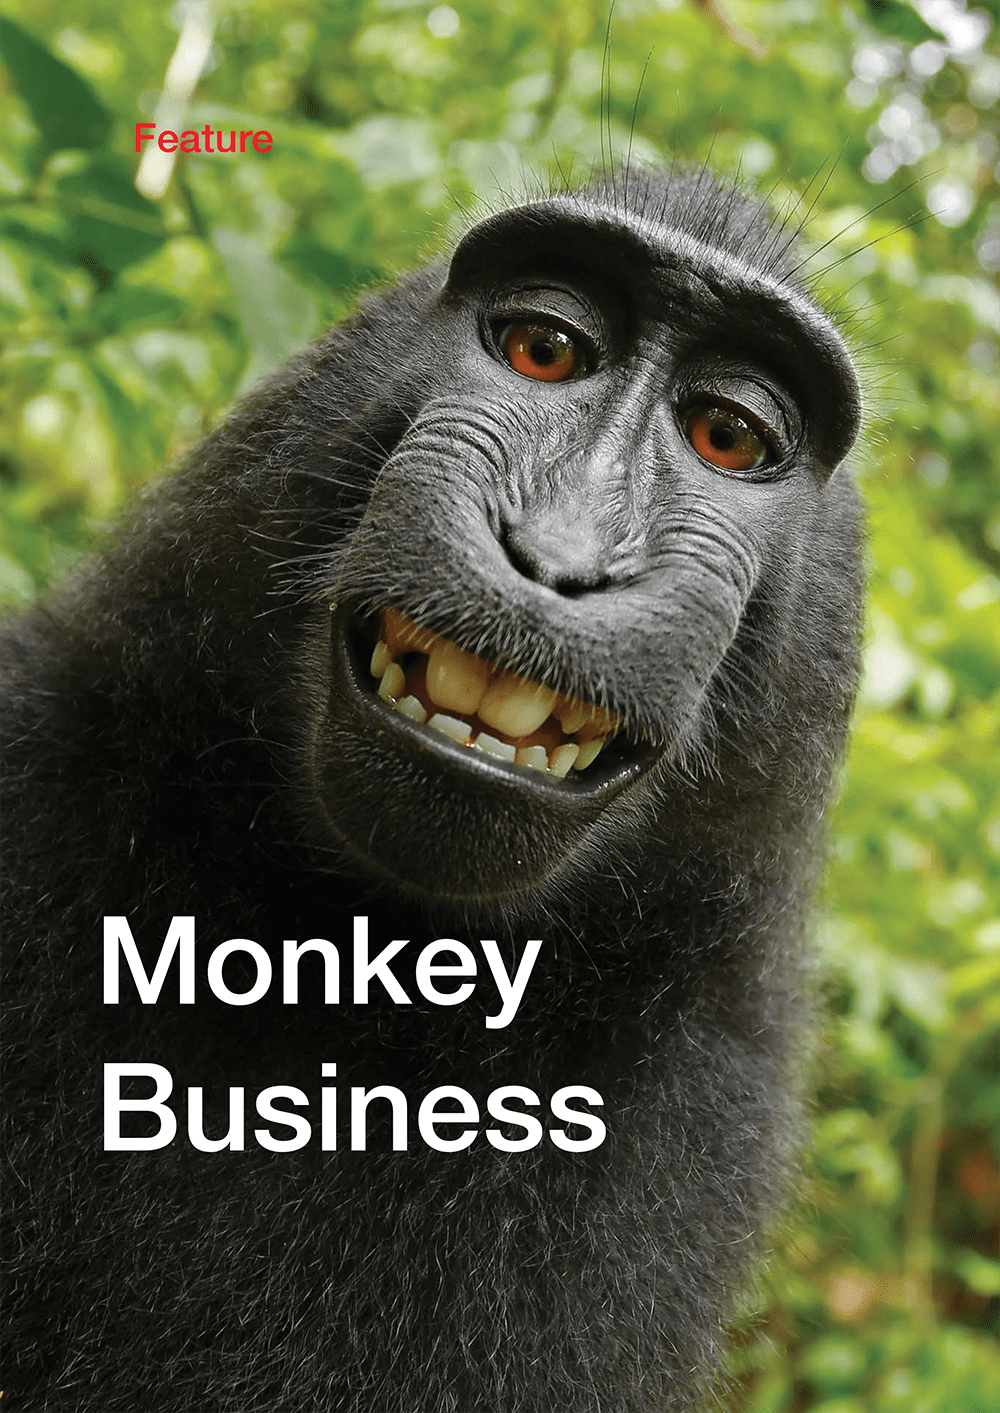 Monkey_Business_1000